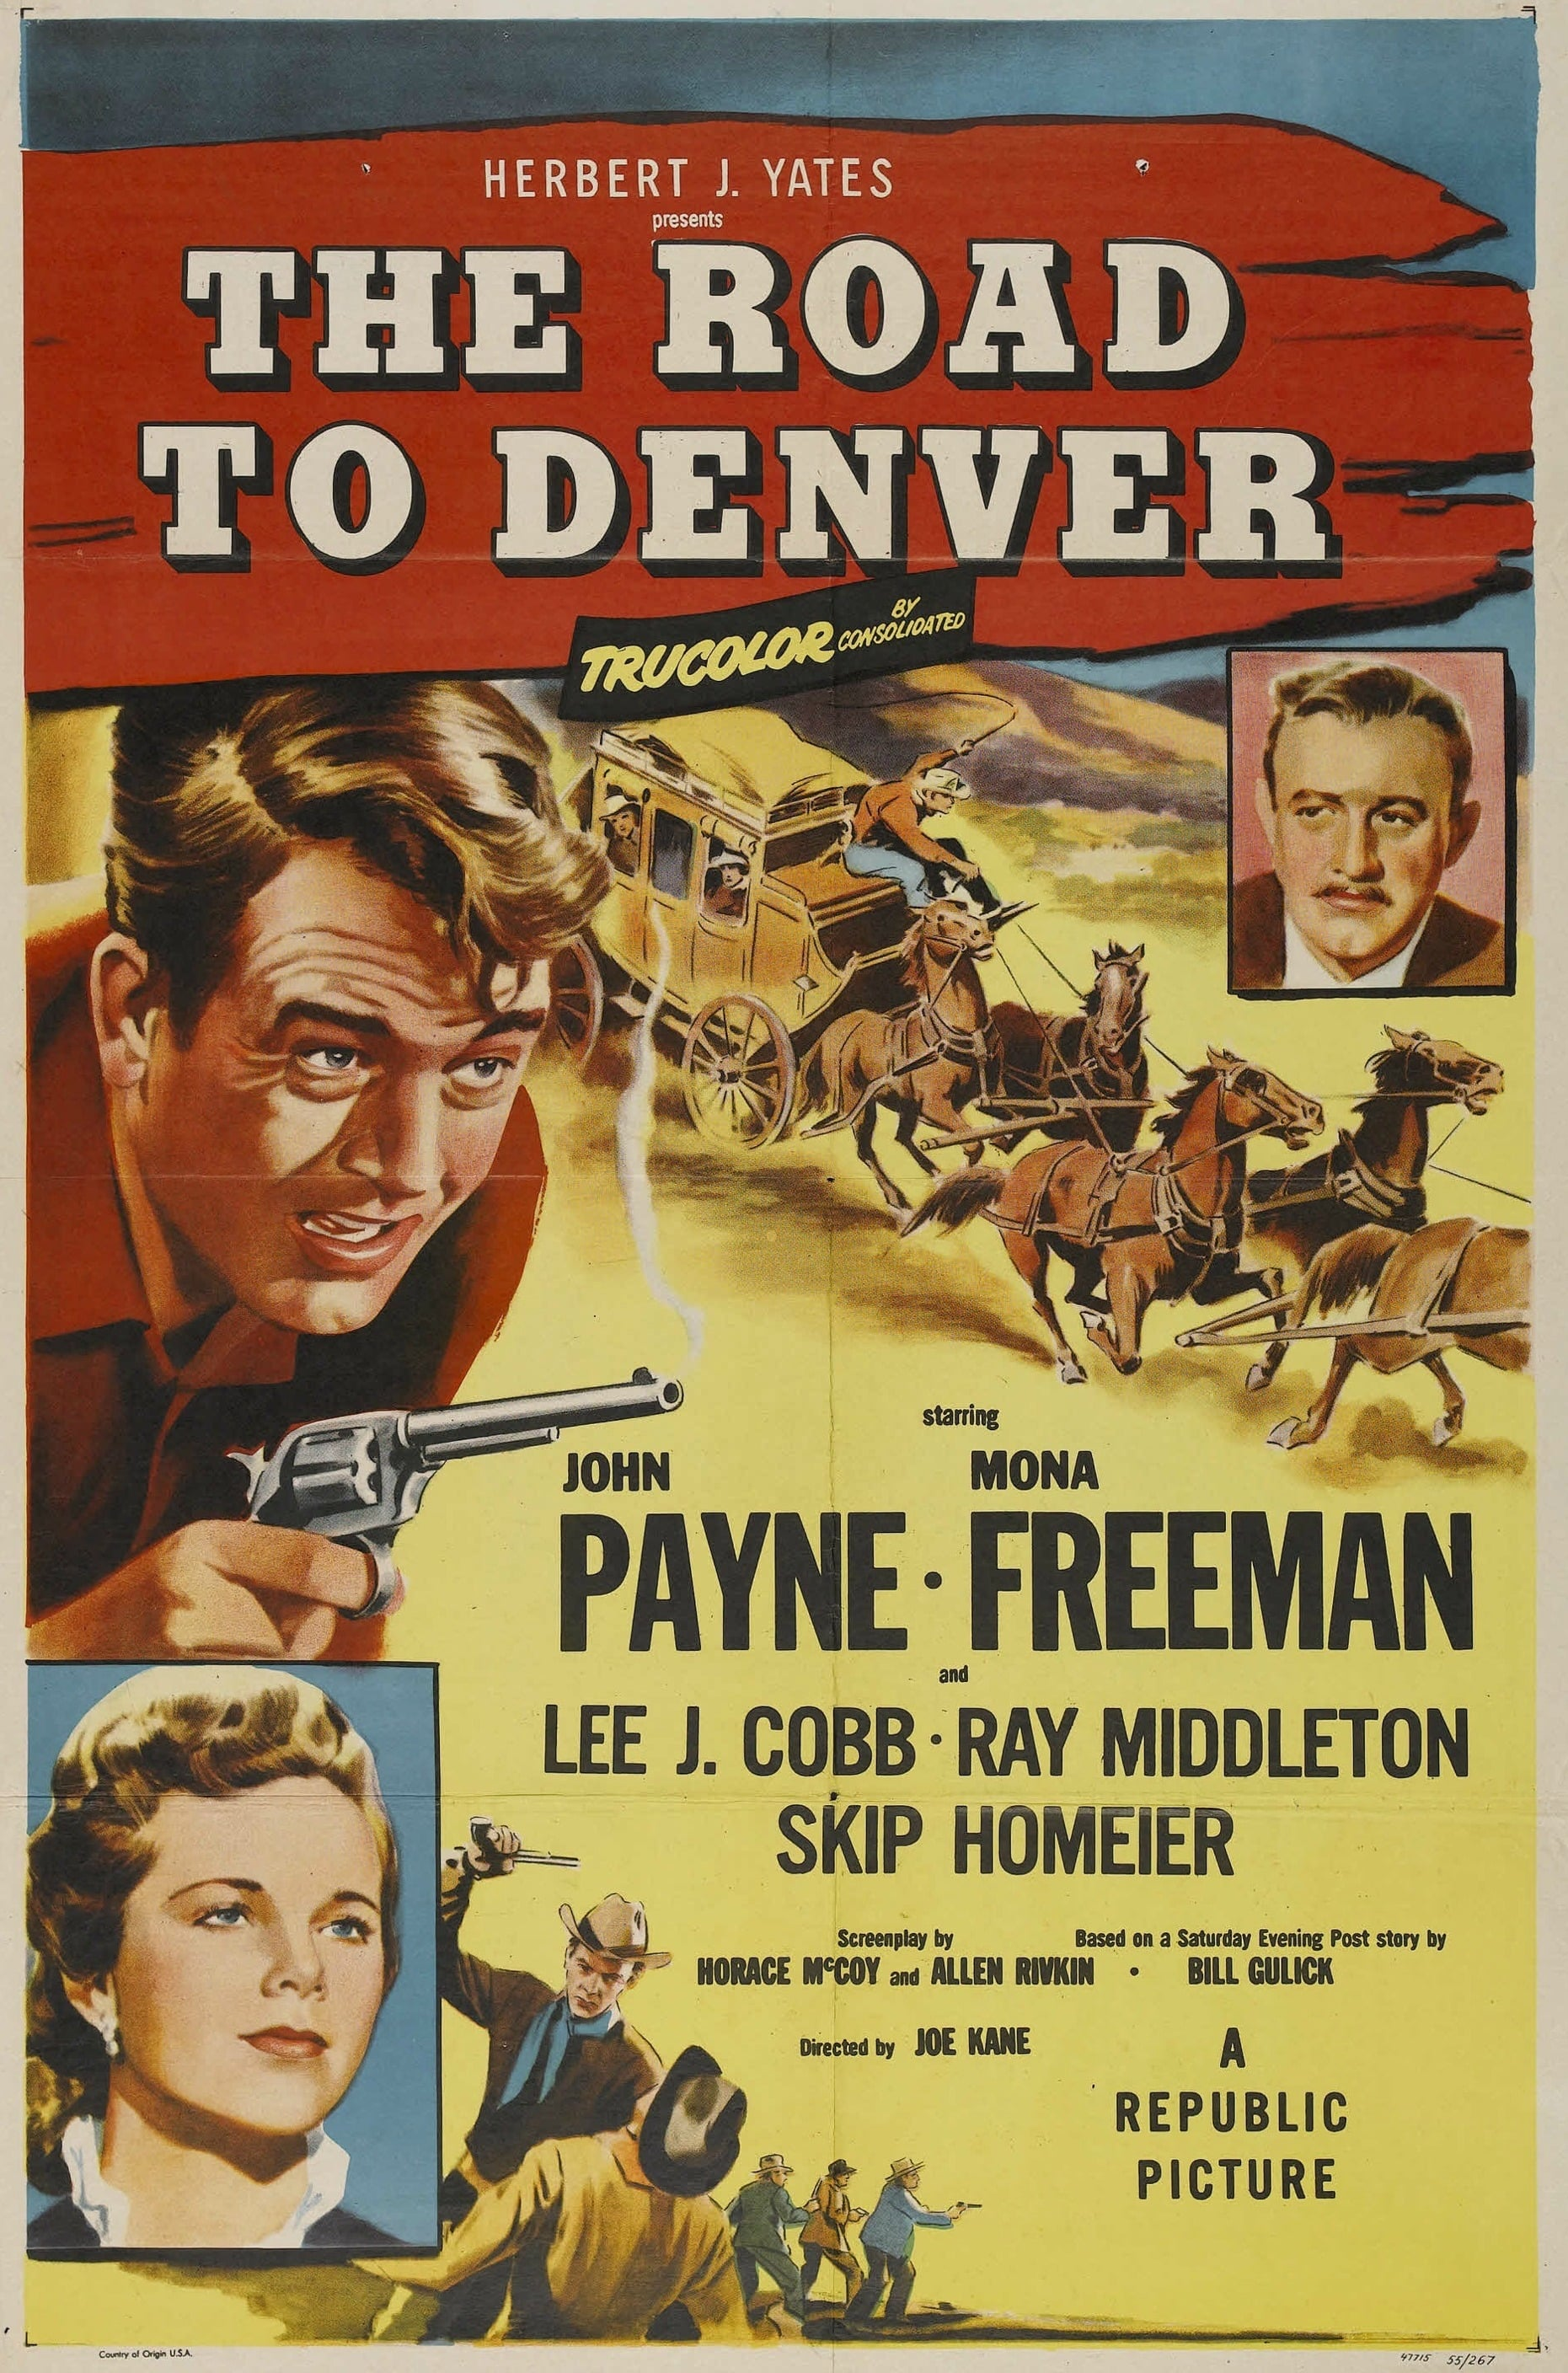 The Road to Denver (1955)